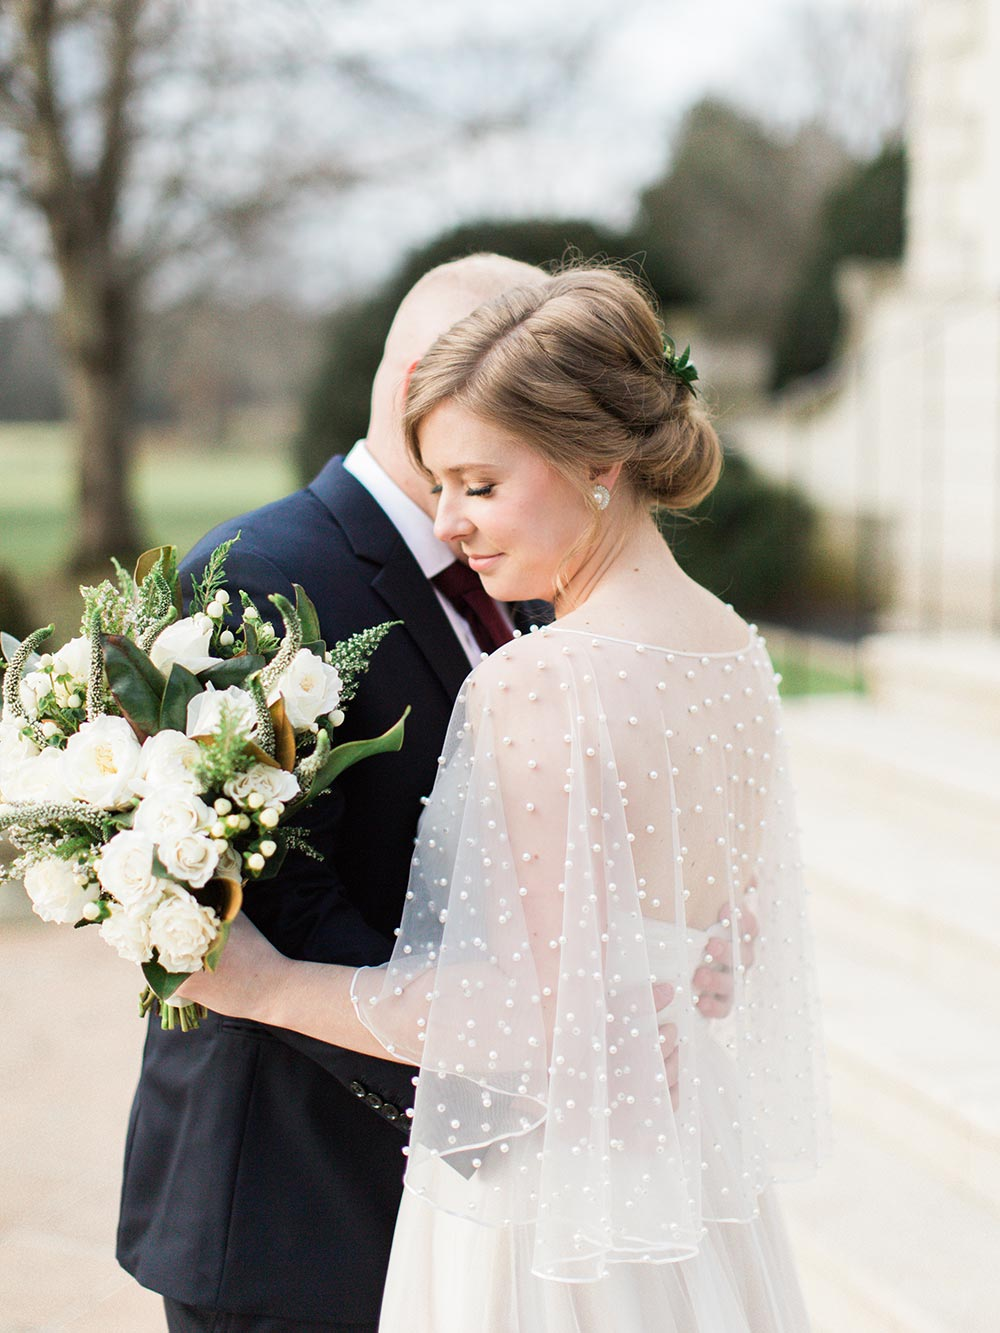 sheer embellished bridal cape with all-white bouquet